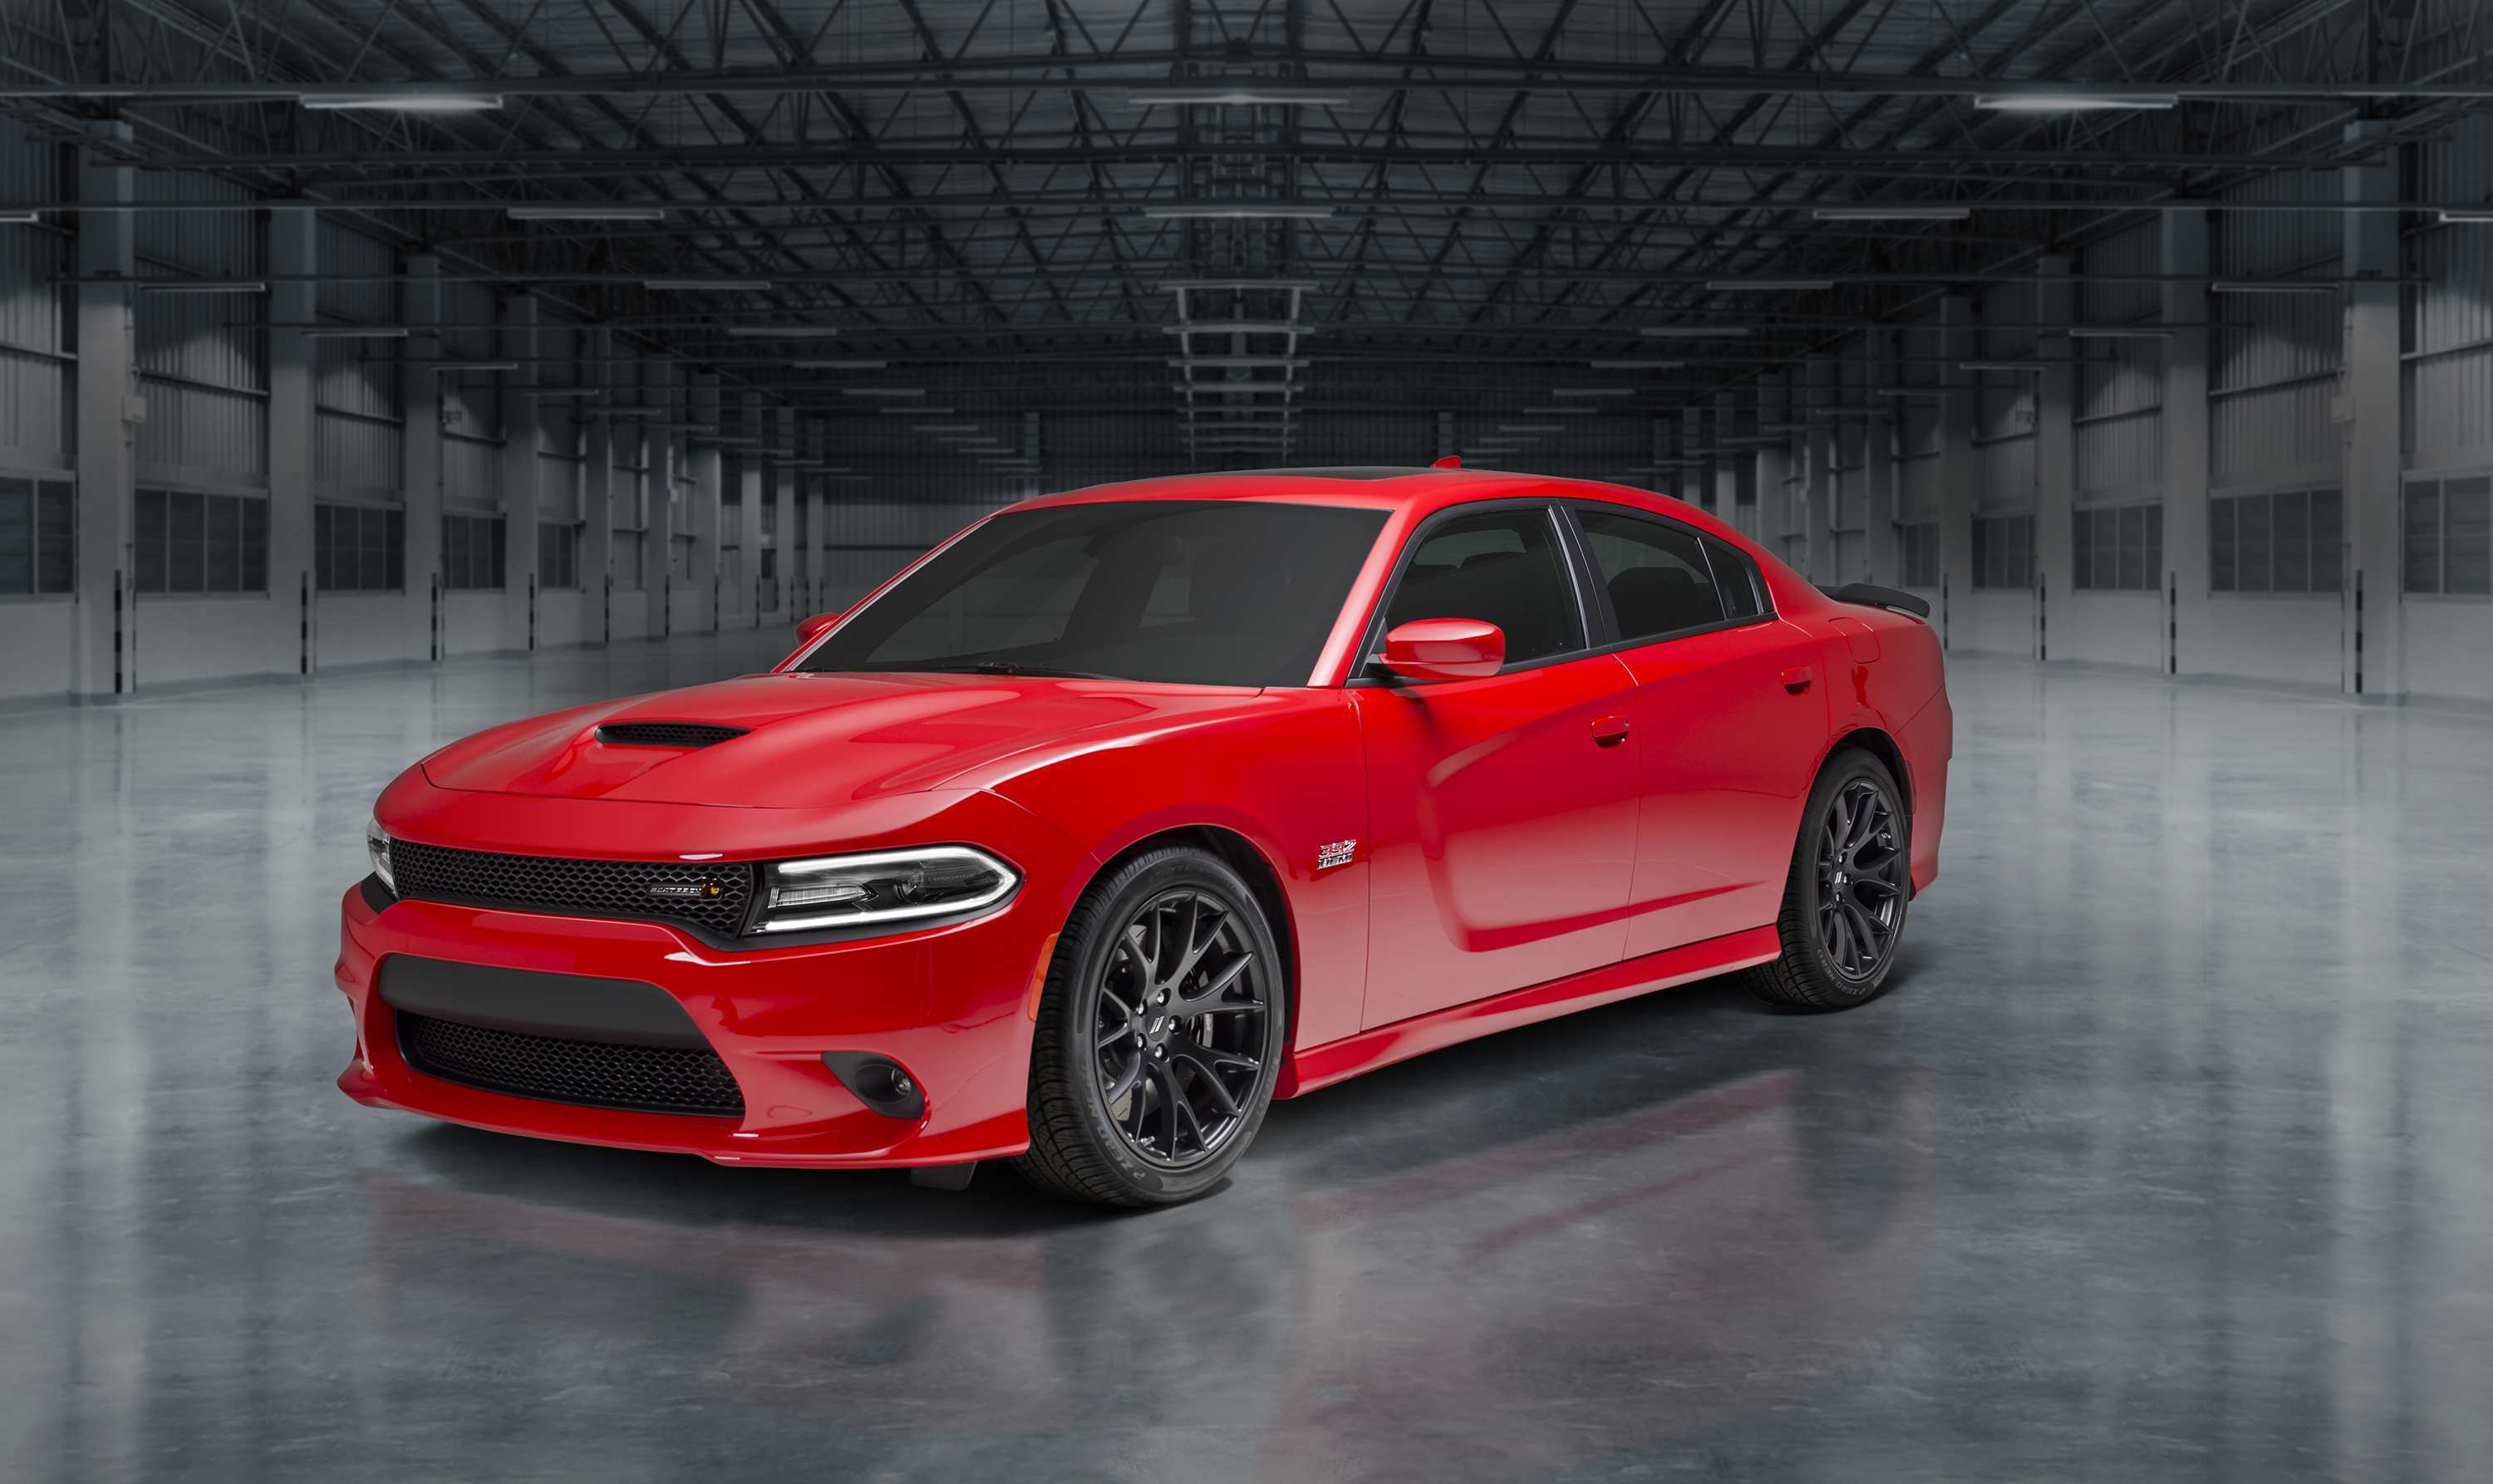 12 Concept of The New Dodge 2019 Charger Release Date Photos by The New Dodge 2019 Charger Release Date